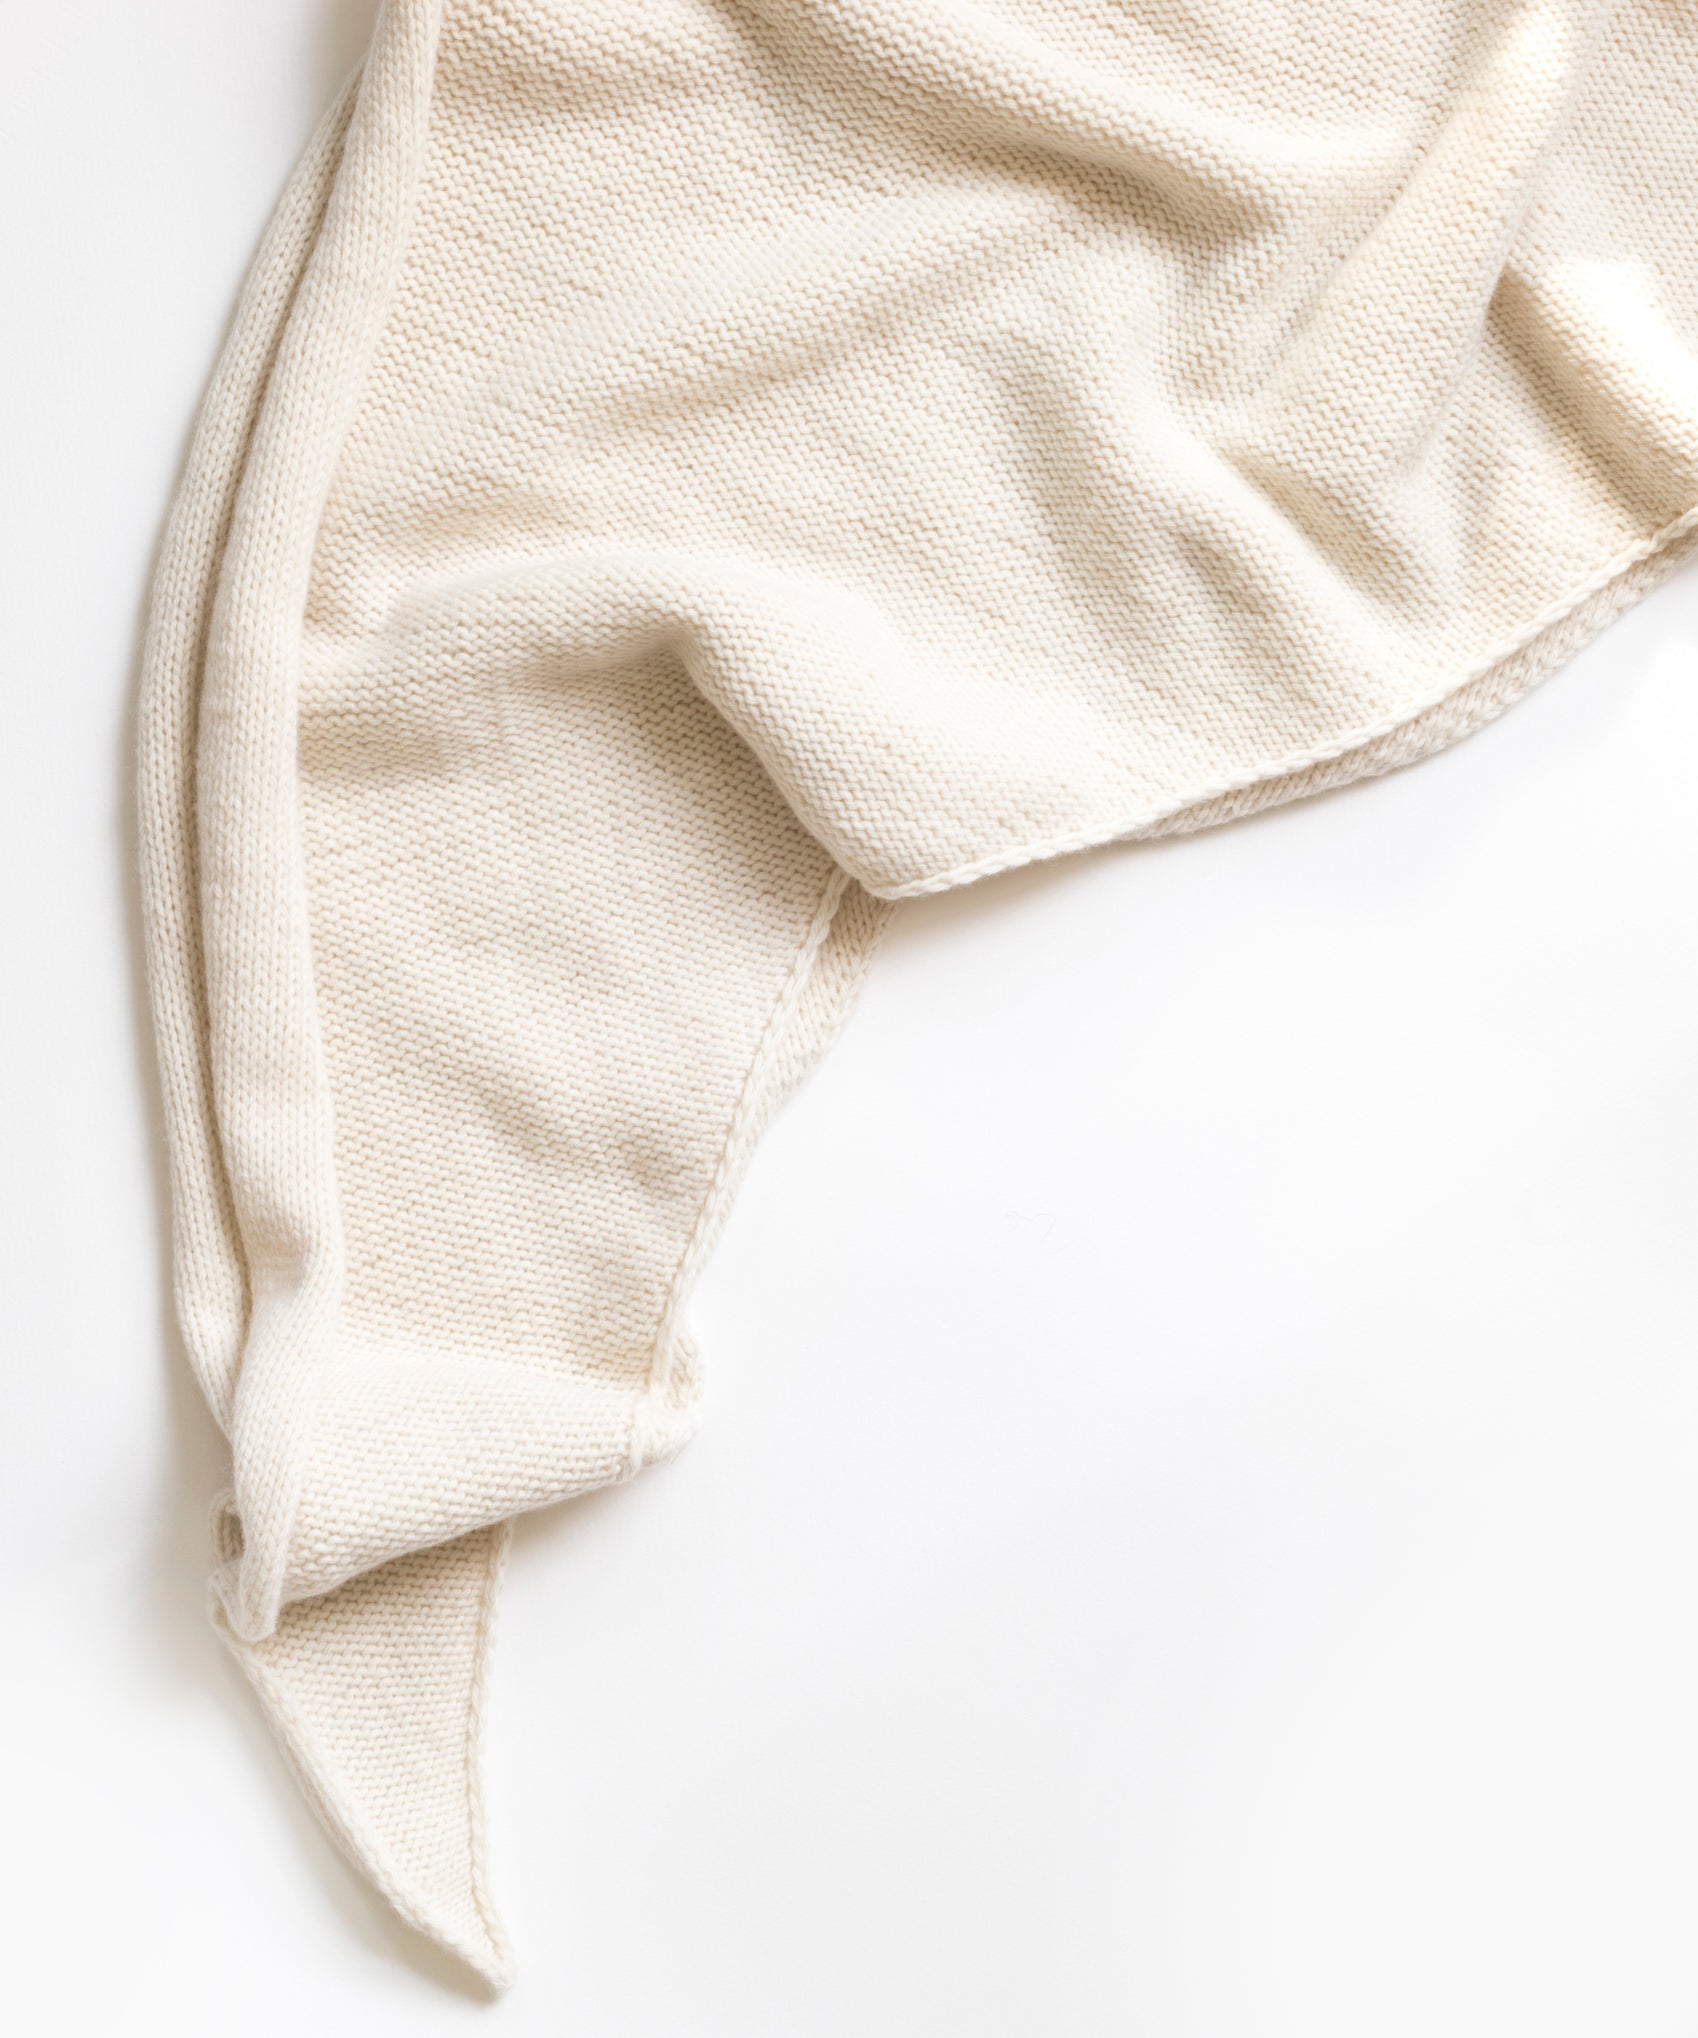 boujo-hake-recycled-cashmere-oversized-summer-scarf